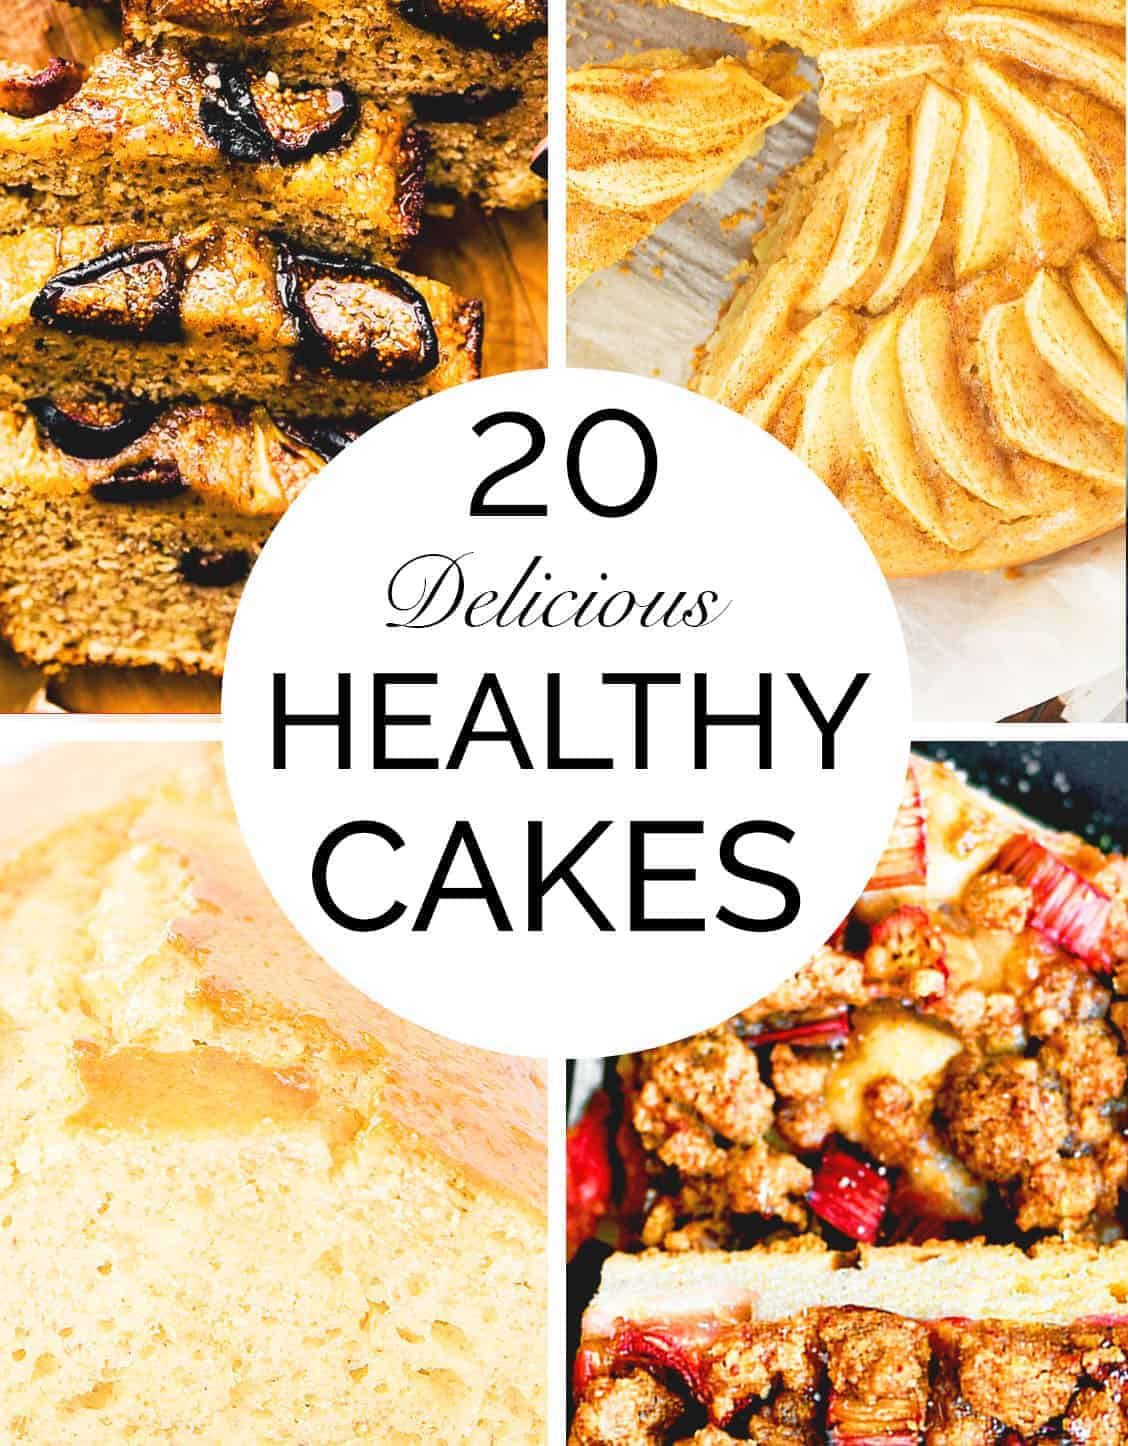 Magnificent 20 Wholesome Healthy Cake Recipes The Clever Meal Personalised Birthday Cards Paralily Jamesorg